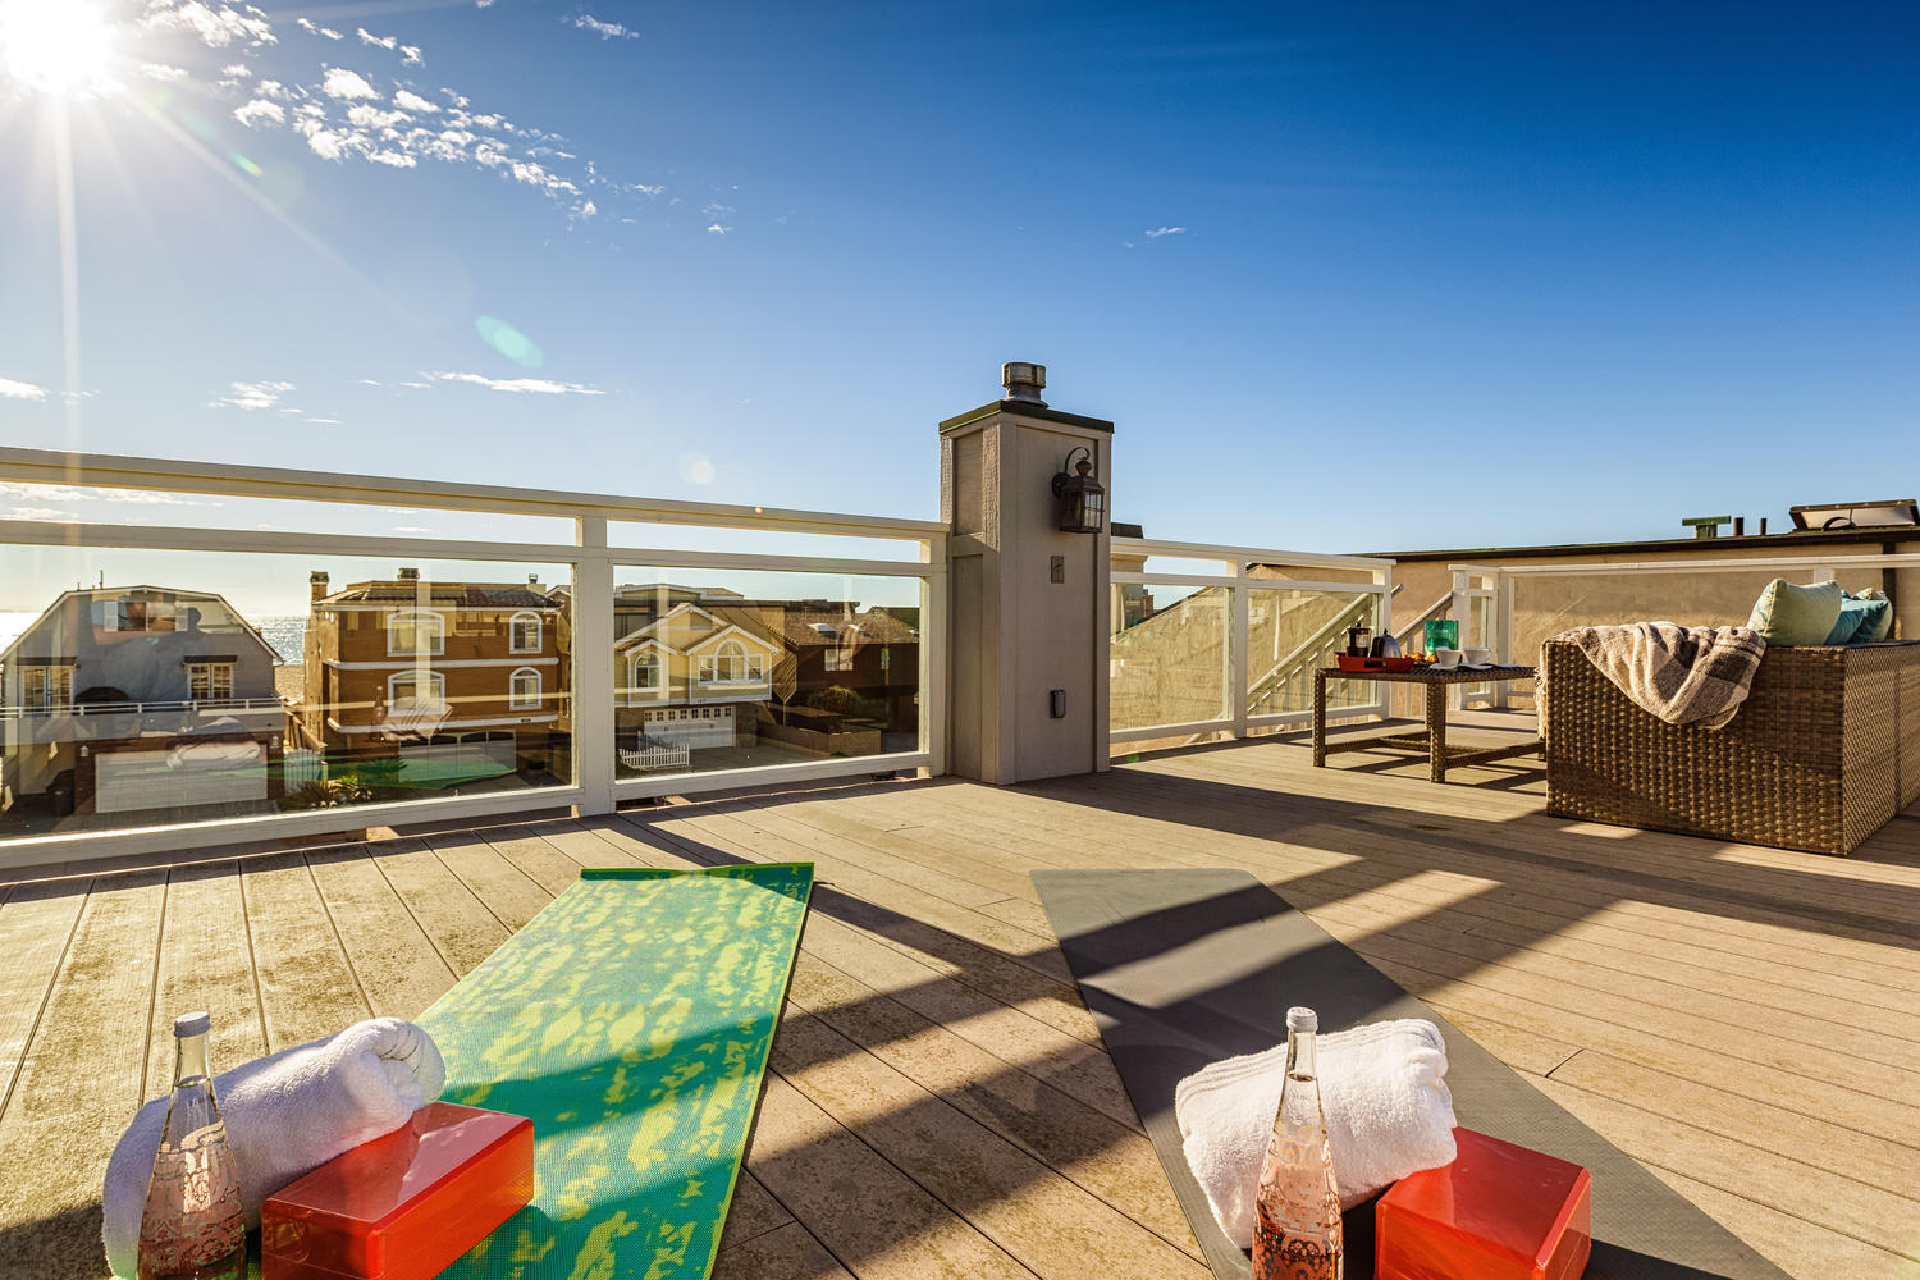 http://addressrealestate.com/media/images/blogs/38/2/b_22-1408-ocean-dr-oxnard-ca-93035-mls-size-022-16-rooftop-patio-1500x1000-72dpi.jpg